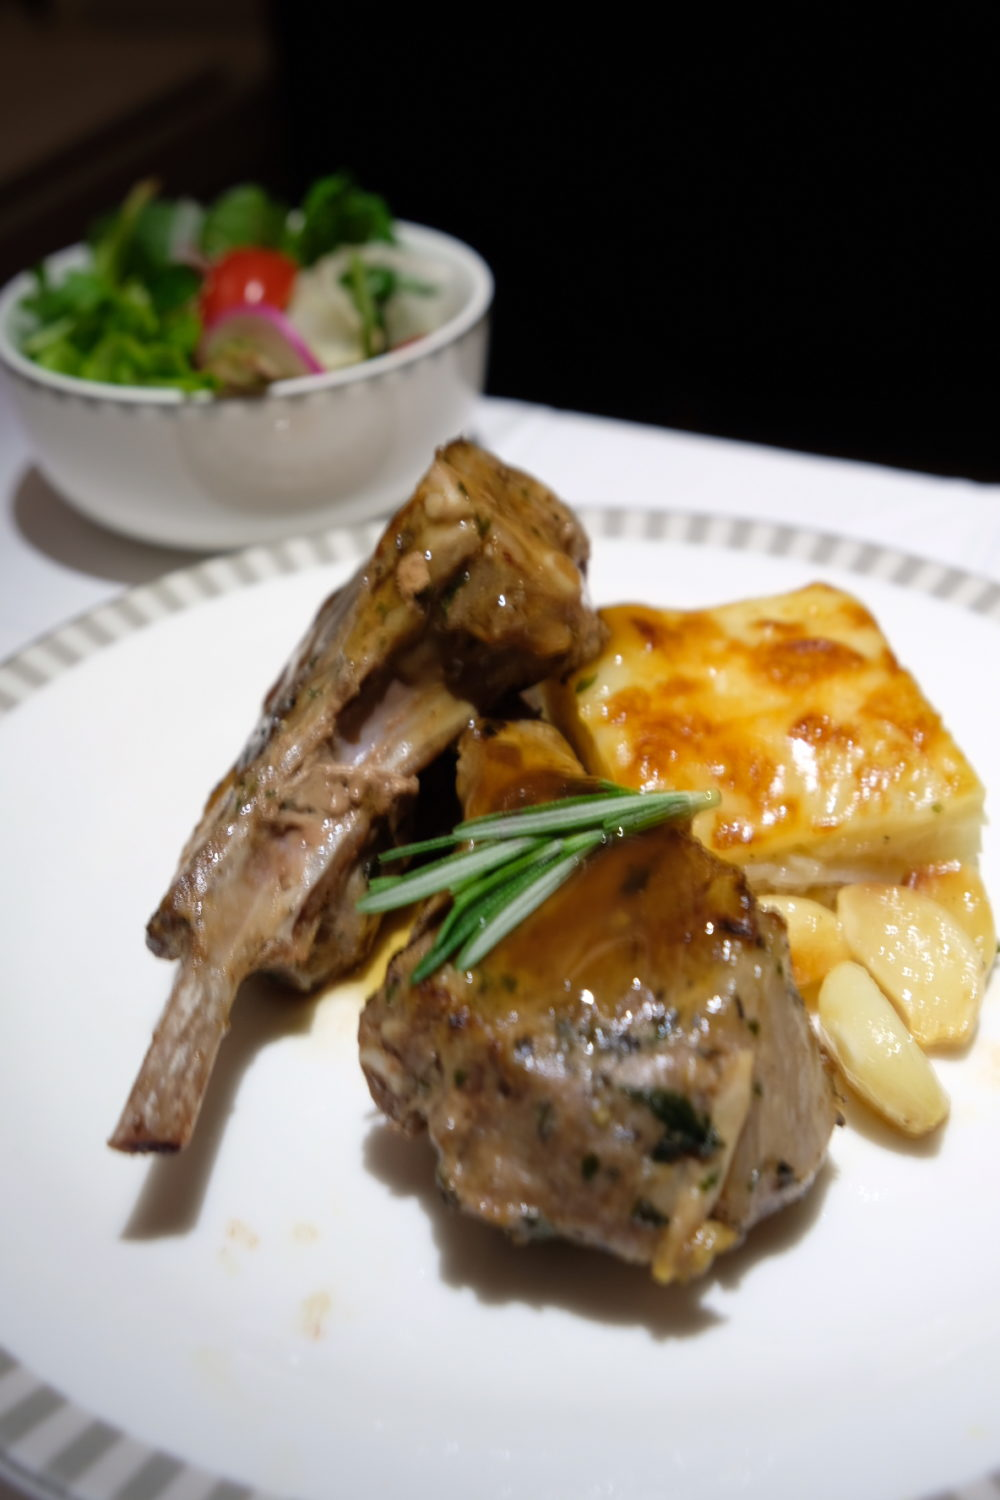 Singapore To Mumbai On SQ424 Business Class, Airbus A380-800 - Book The Cook, Roast Lamb Chop